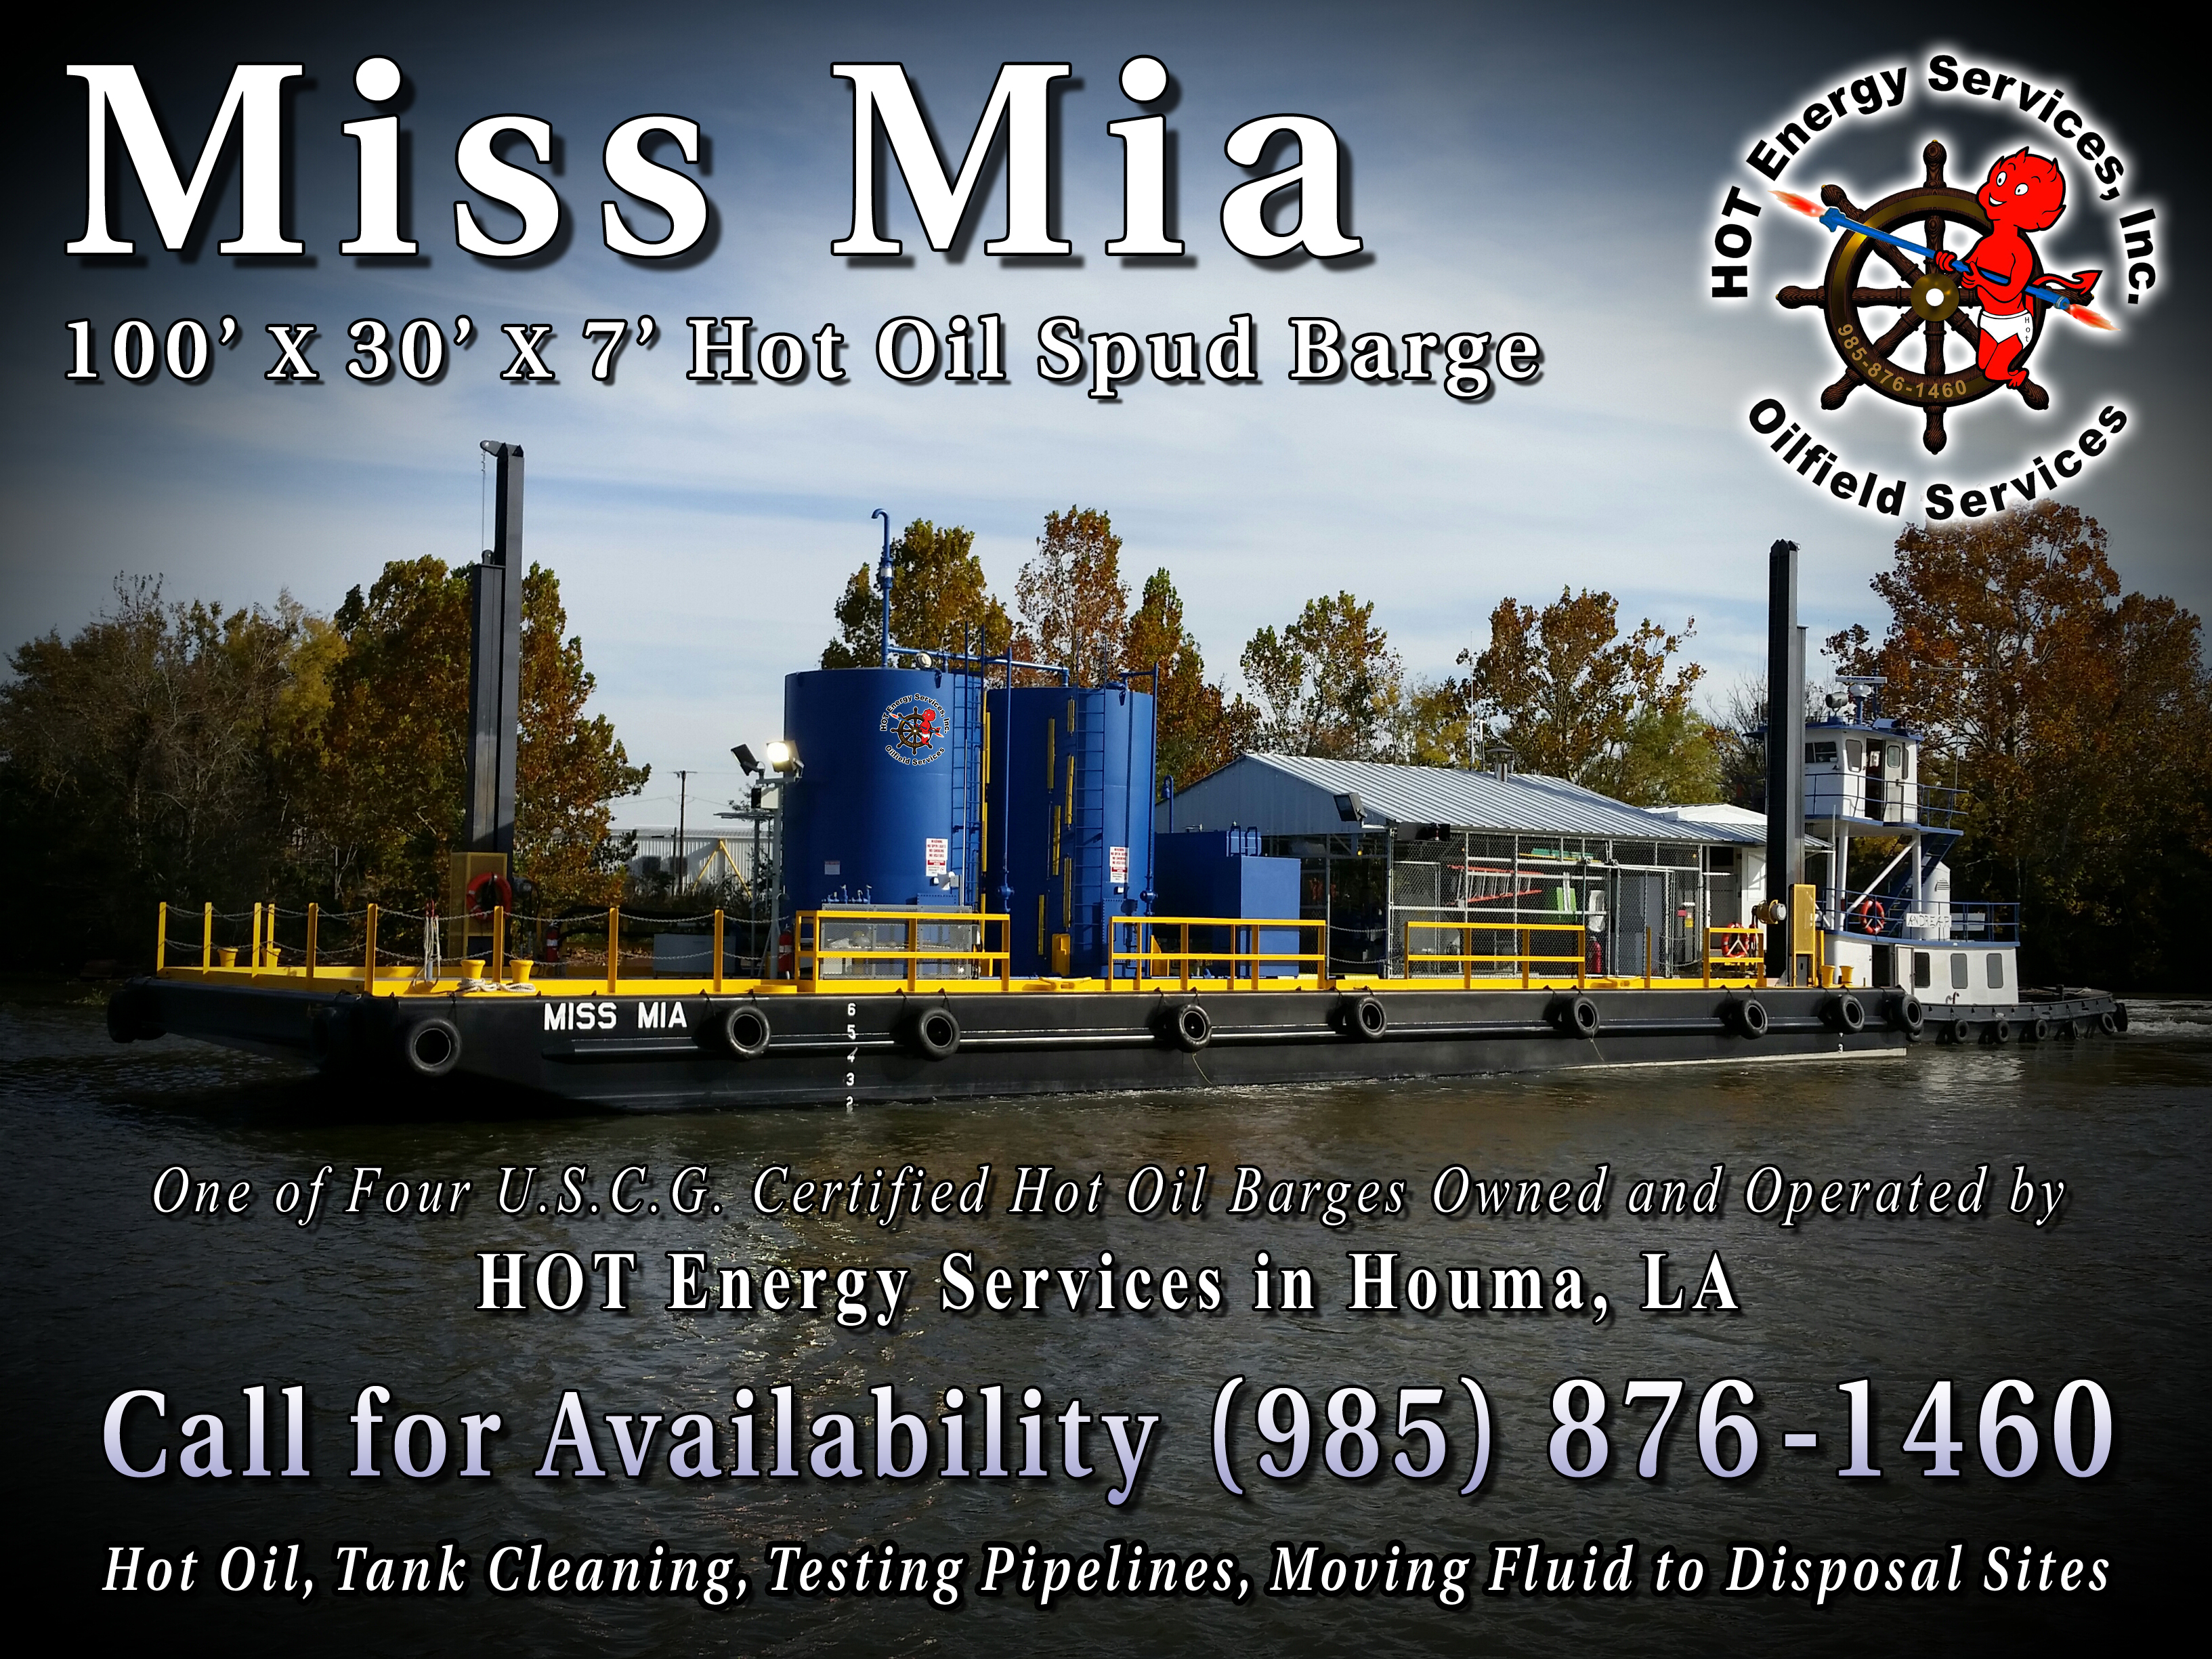 Miss Mia Hot Oil Spud Barge